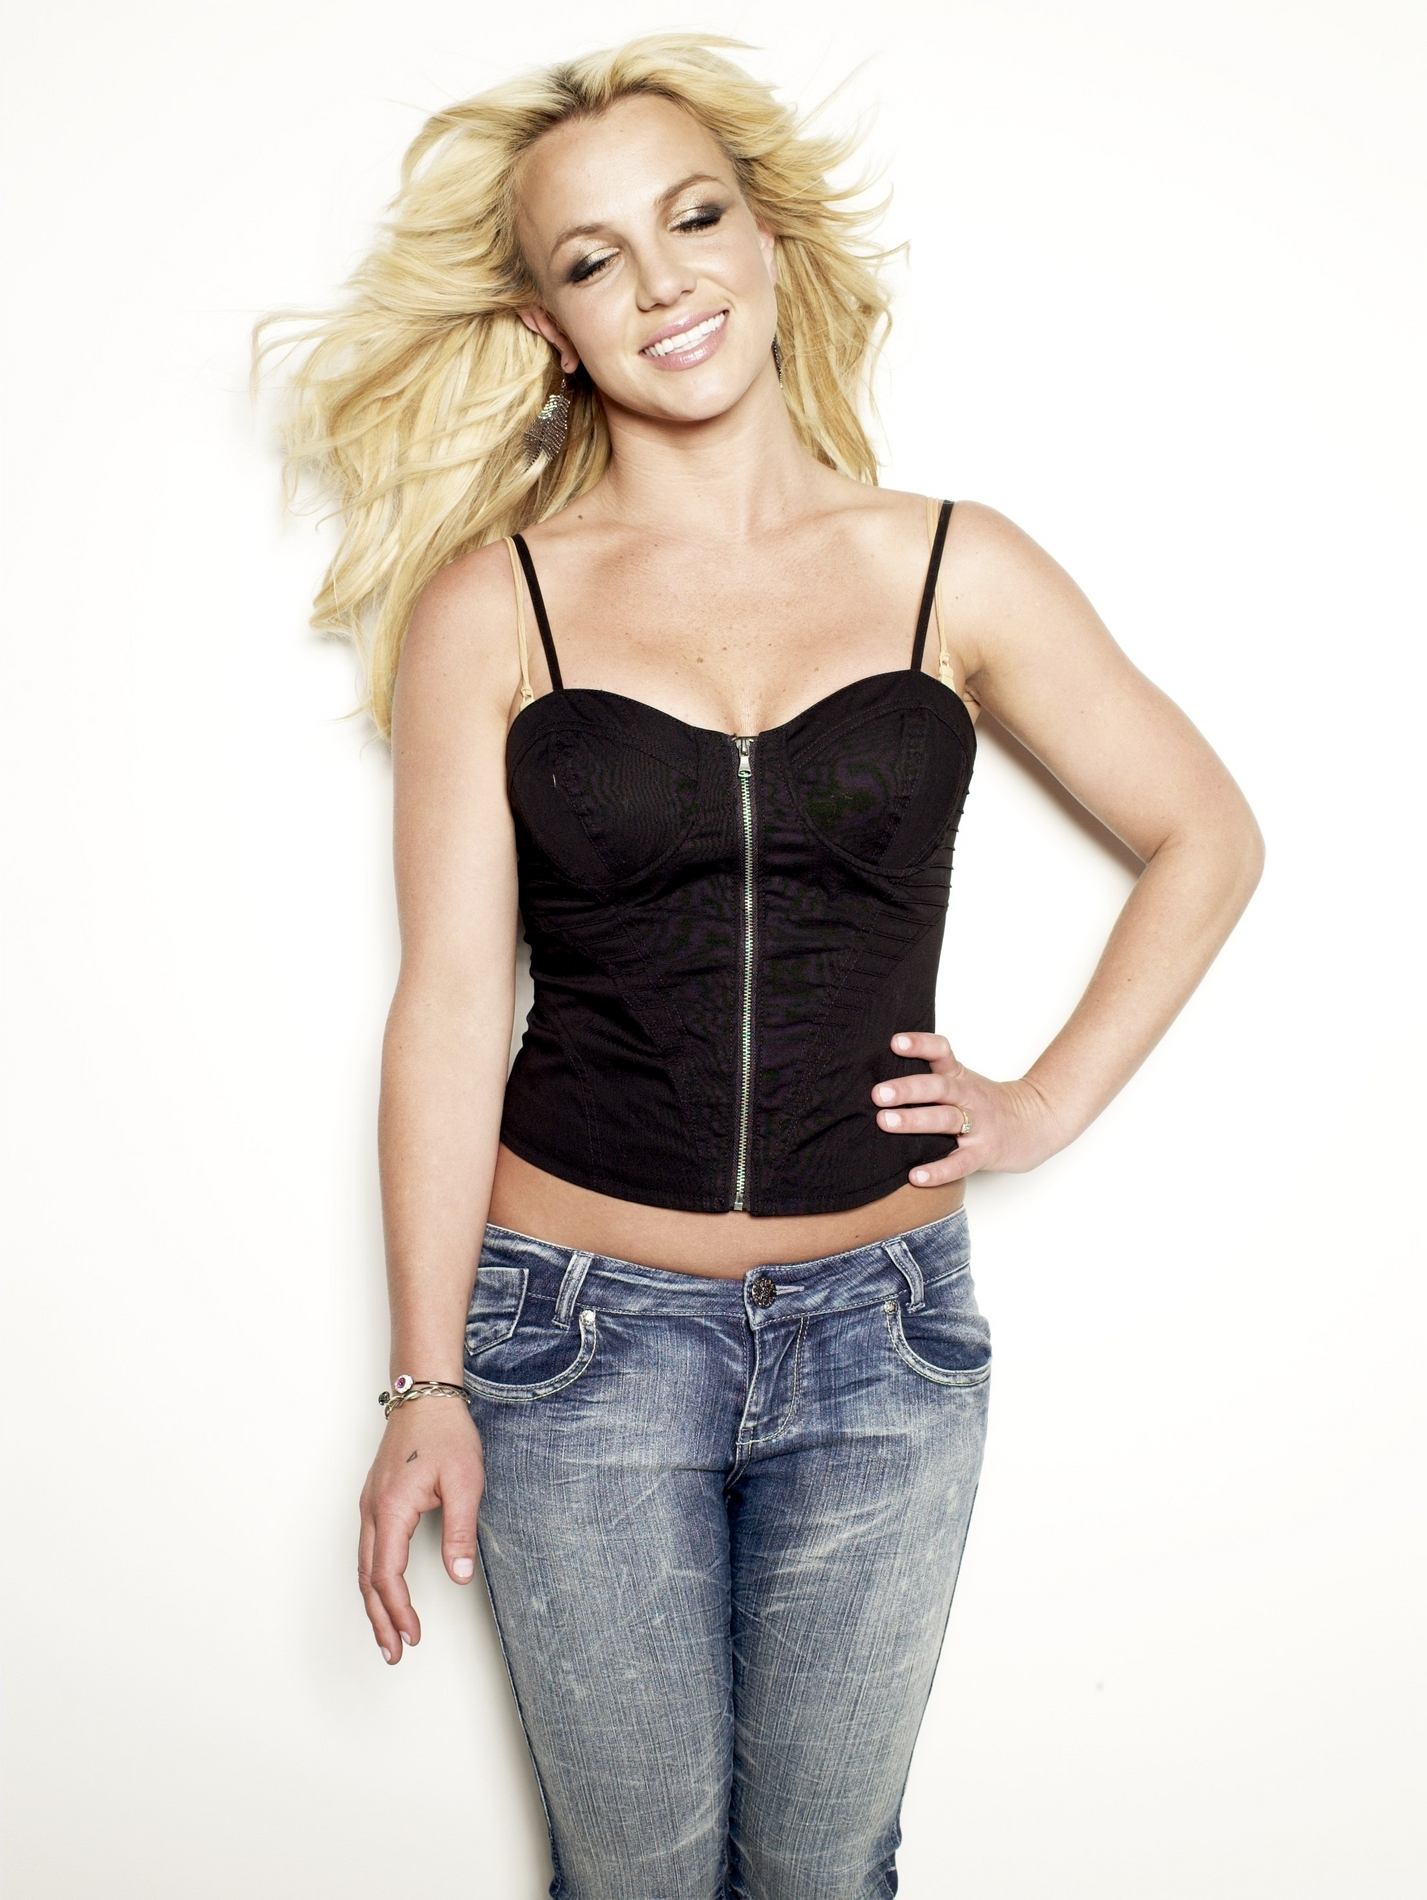 Britney Spears - Cliff Watts Photoshoot for Cosmopolitan ...